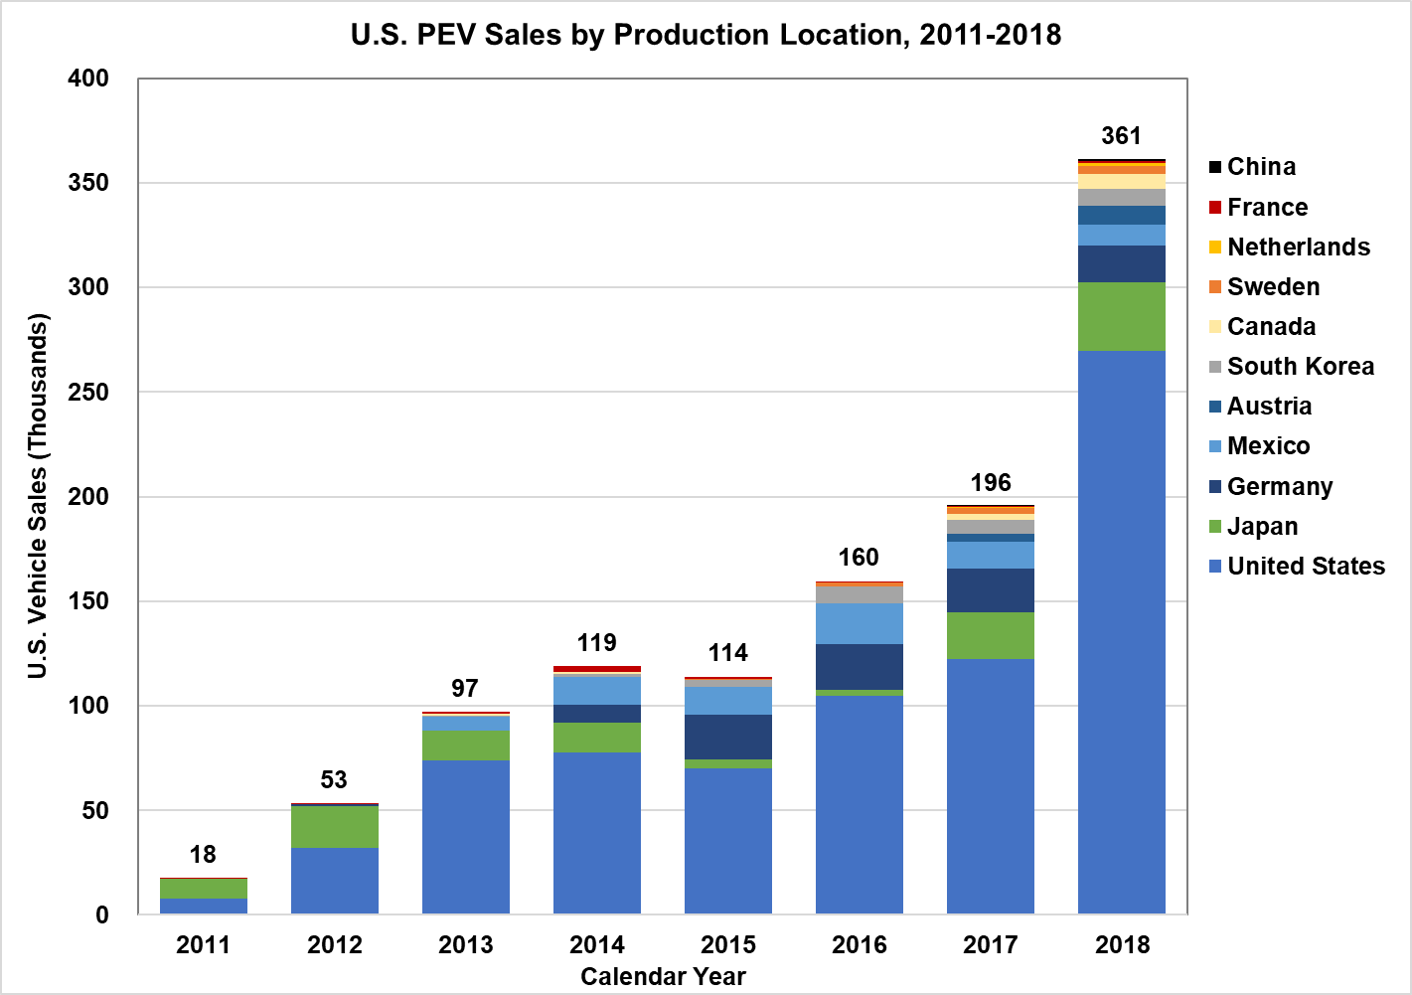 US PEV Sales by Production Location